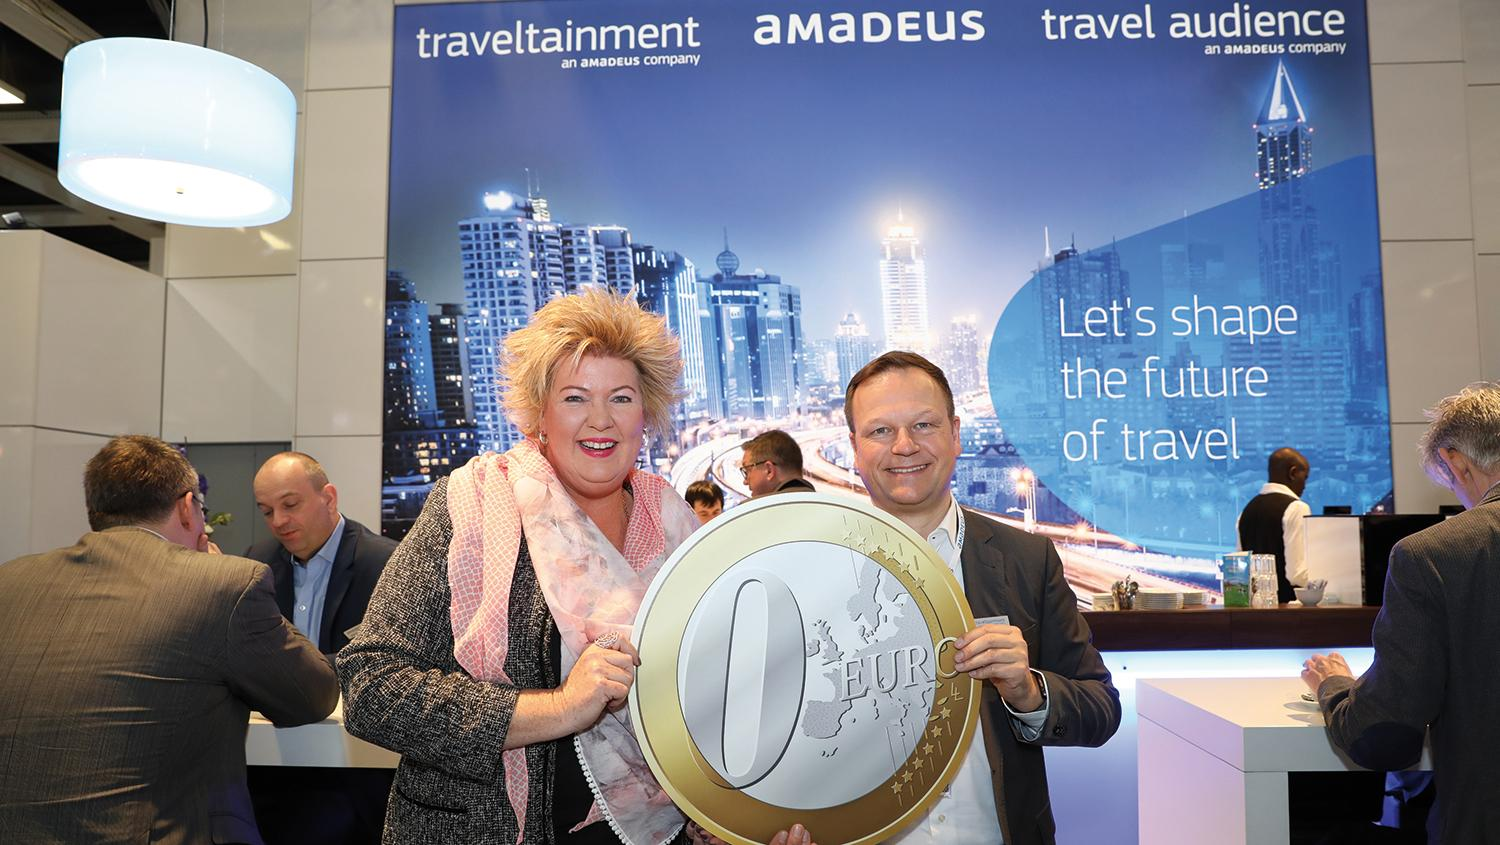 Uta Martens (Amadeus Germany) und Oliver Rengelshausen (Traveltainment) stellen das Tool am Messestand vor.